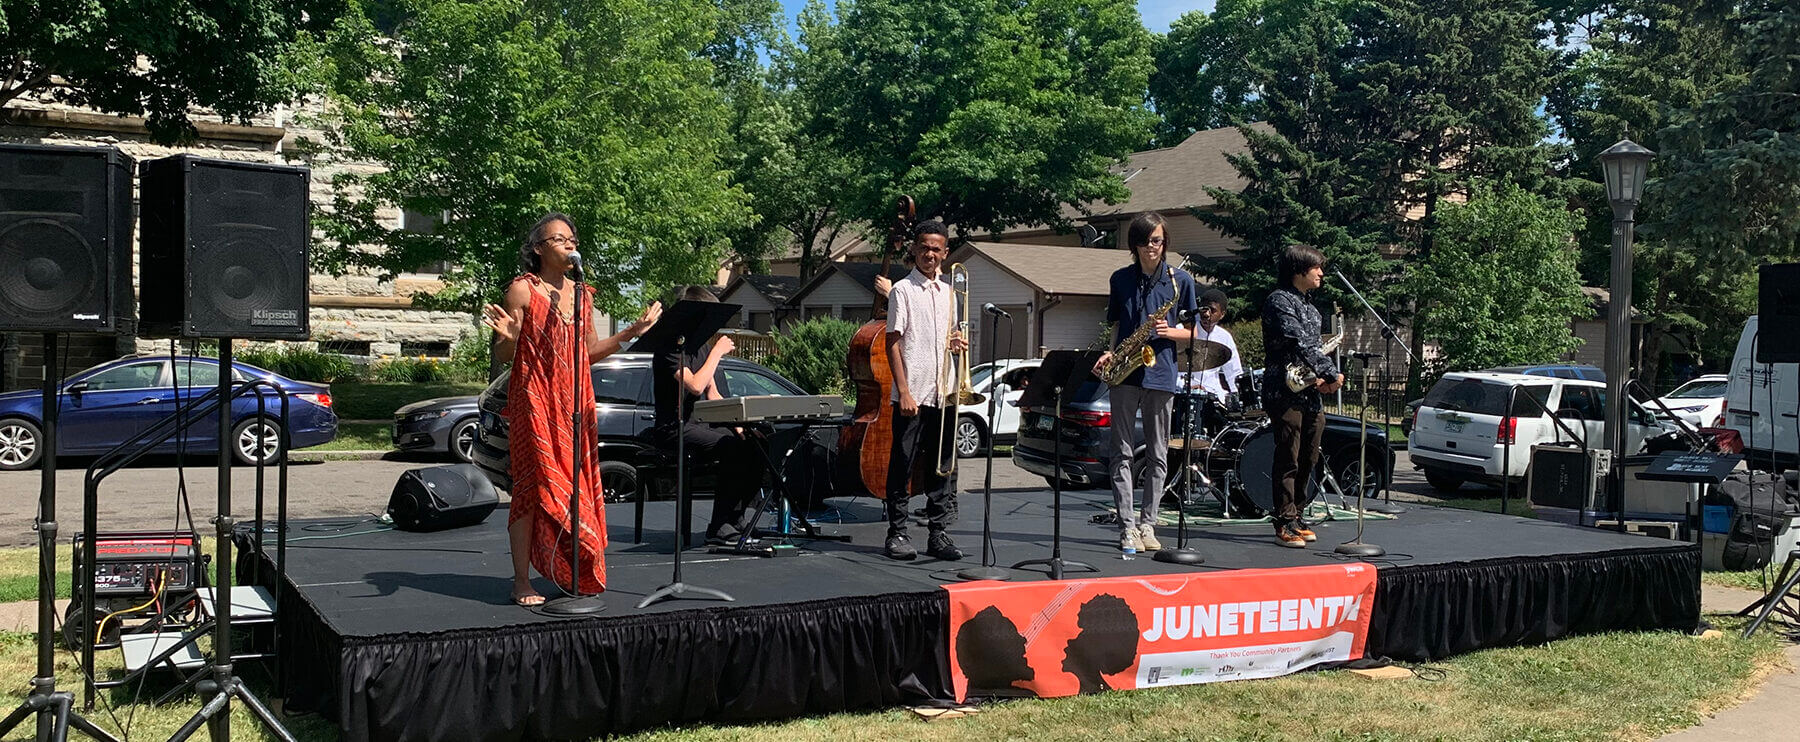 musicians on stage at Juneteenth event